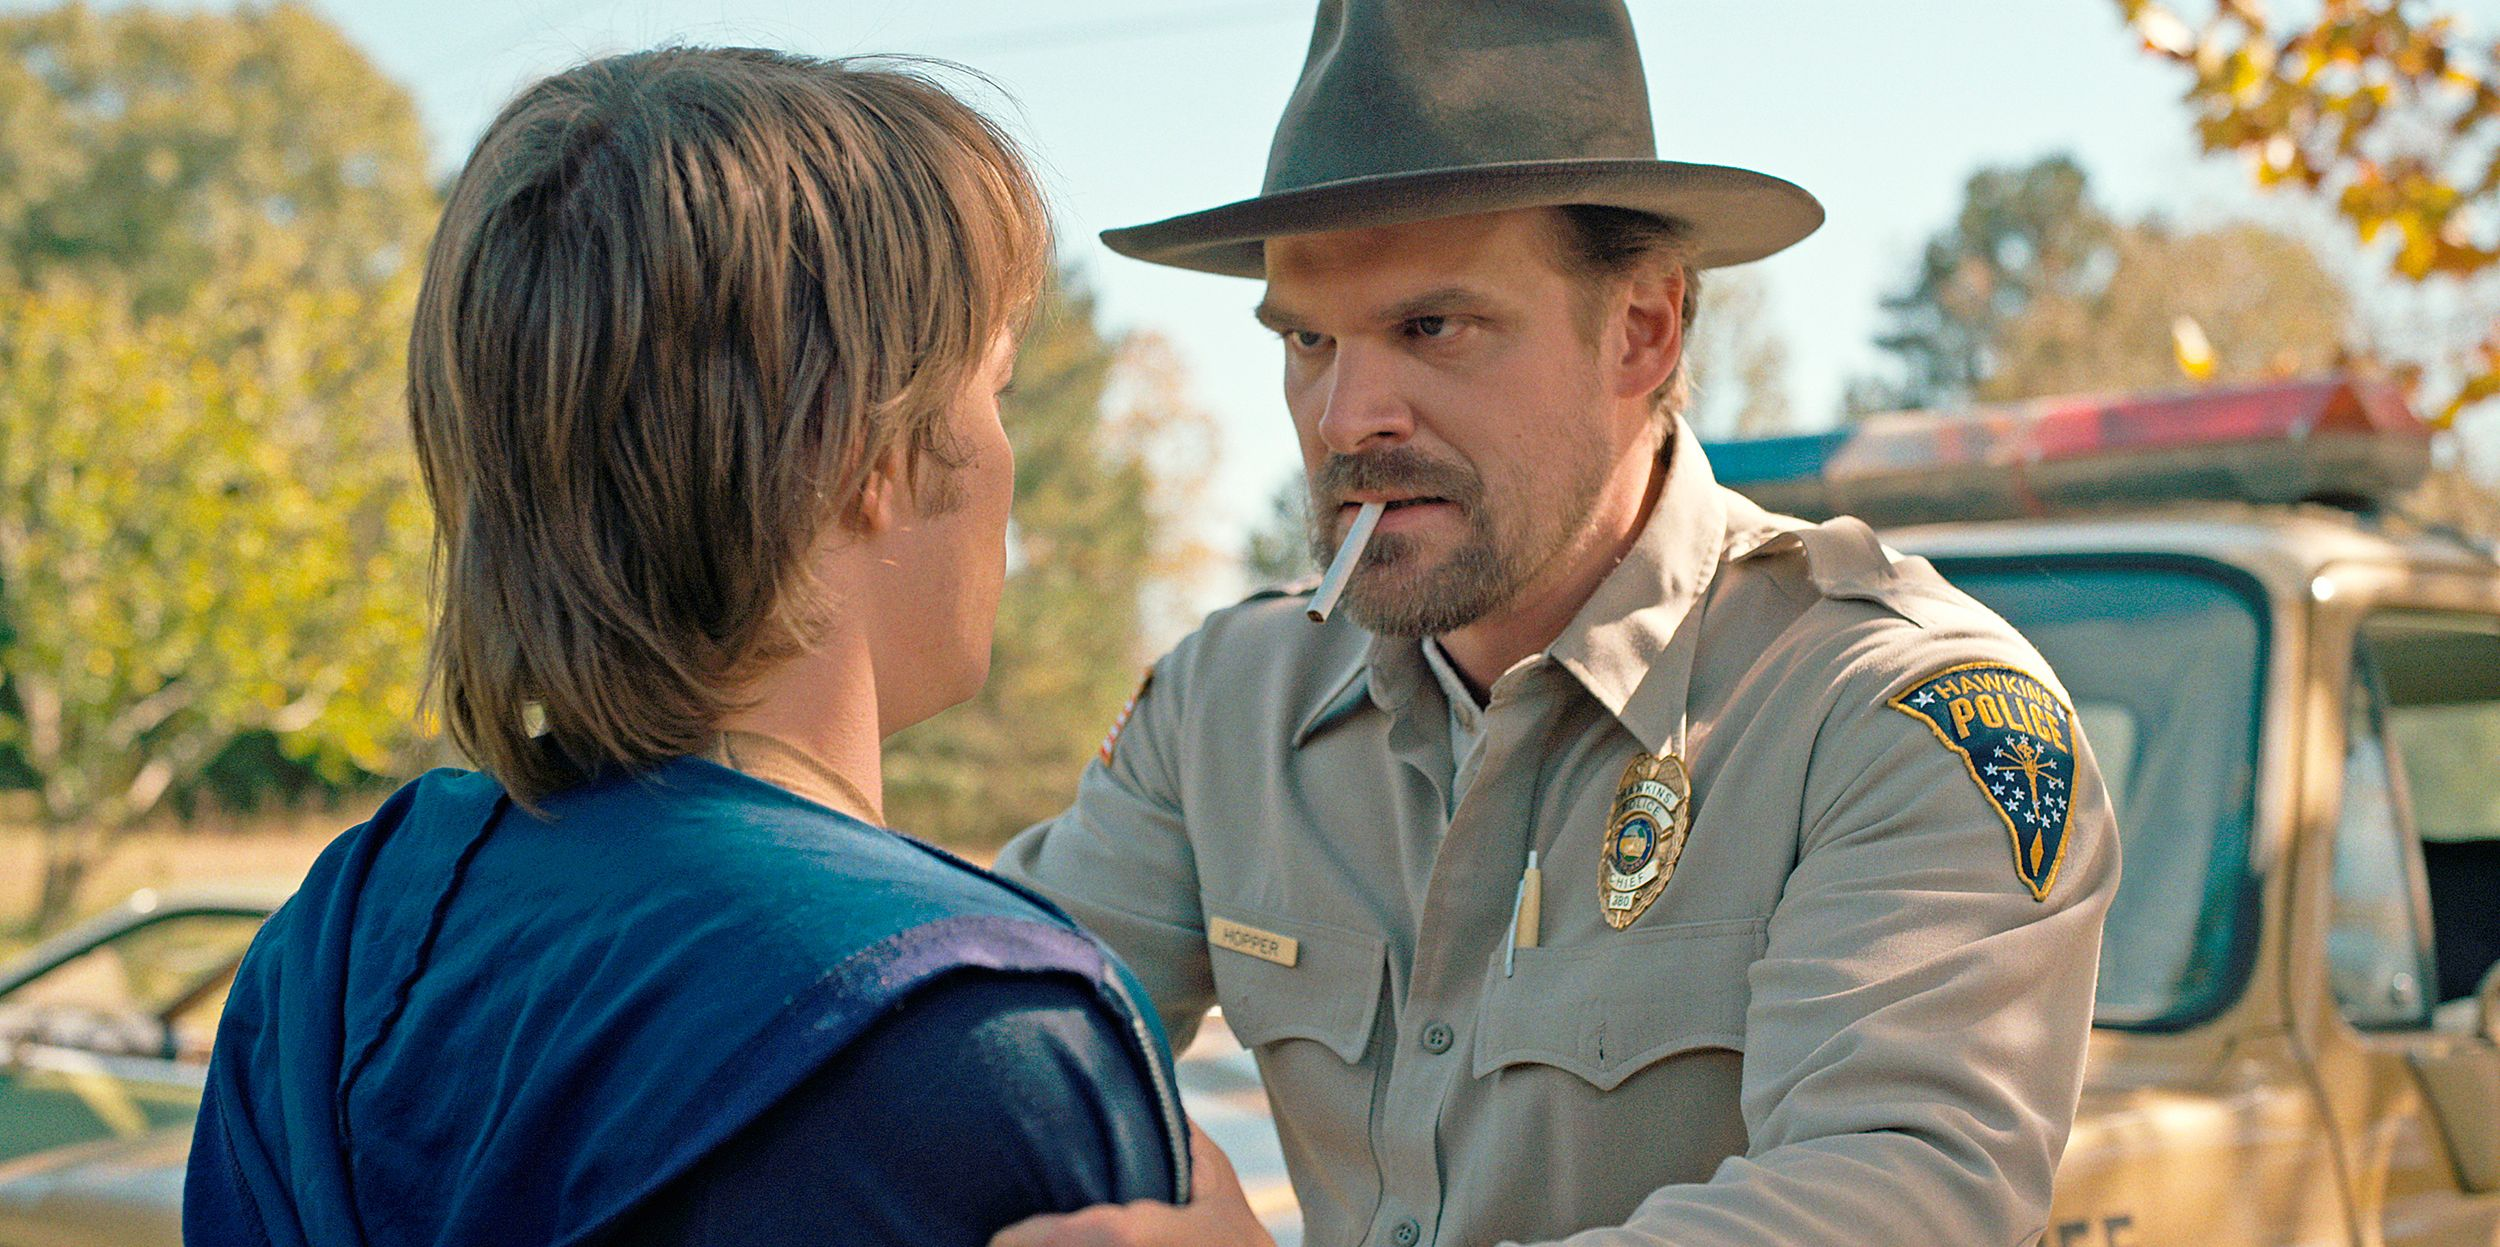 David Harbour, stranger things, Jim Hopper, stranger things 2, policia, comisario, sherrif, will, steve, instagram, parecido, parecido razonable, redes sociales